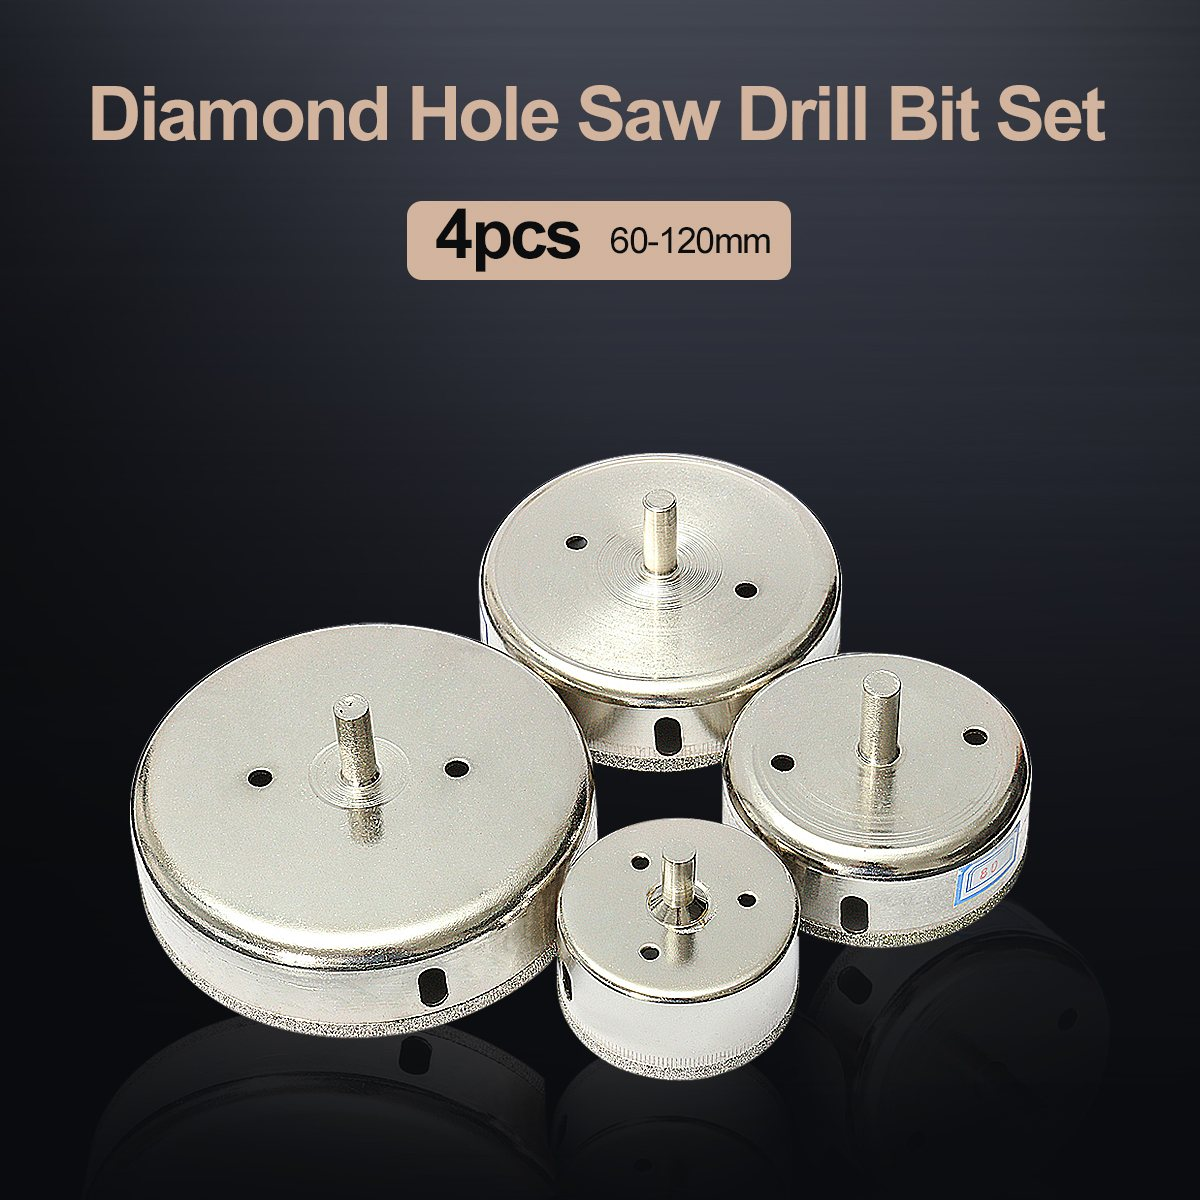 4pcs 60/80/100/120 mm Diamond Hole Saw Tile Set Drill Bit for Ceramic Glass Tile Cutting Porcelain Marble Drill Bit